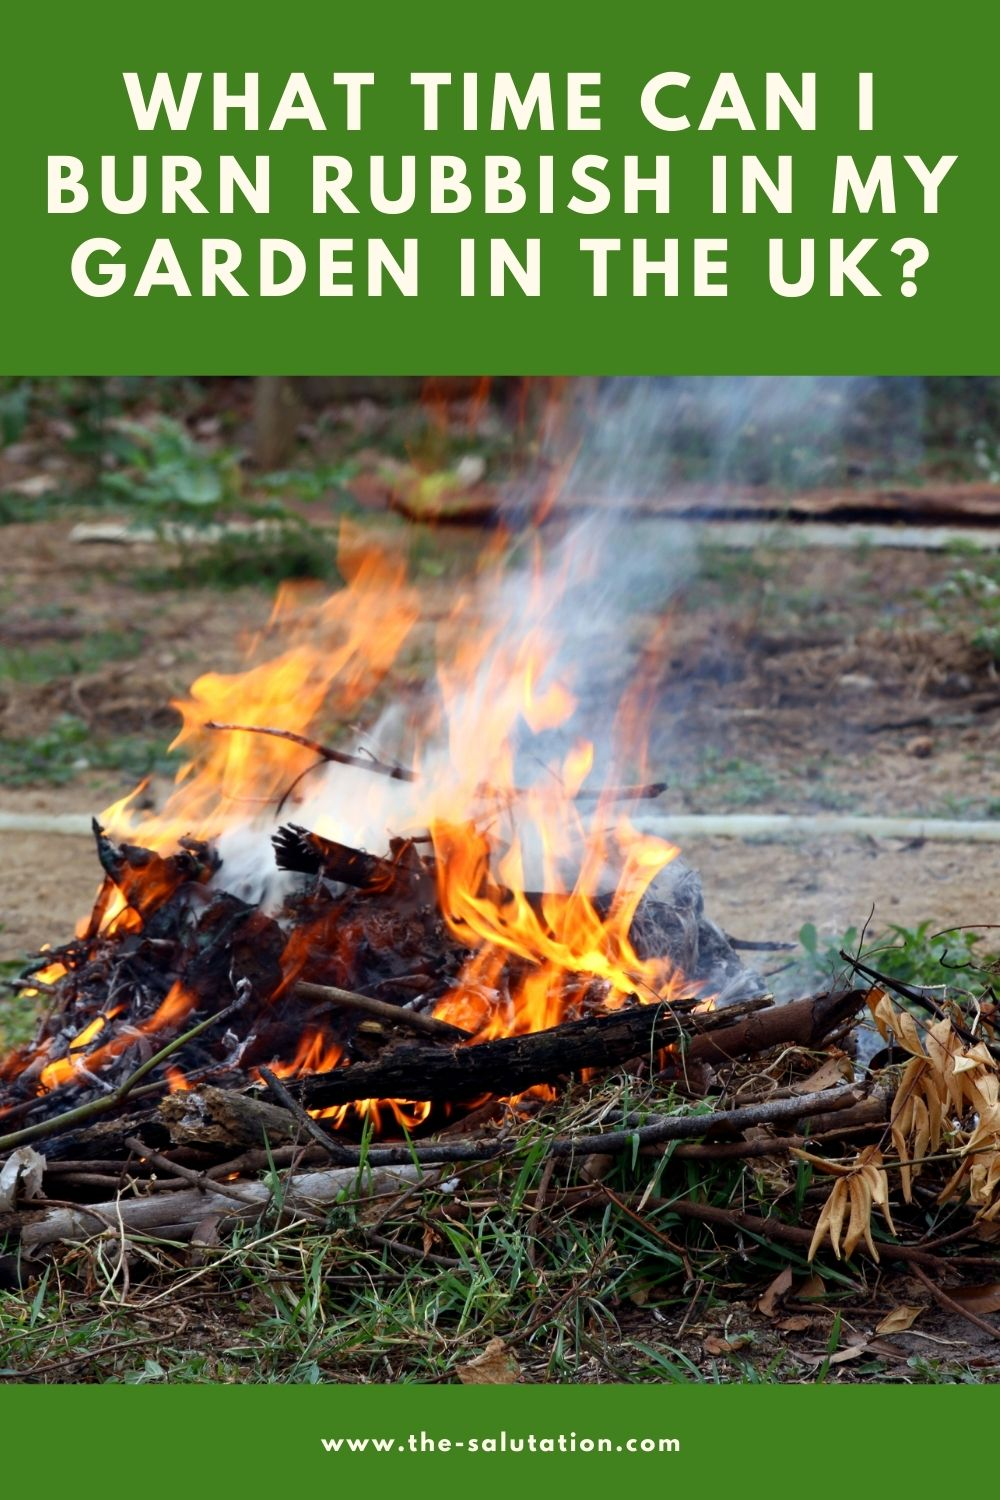 What Time Can I Burn Rubbish in My Garden in the UK 2